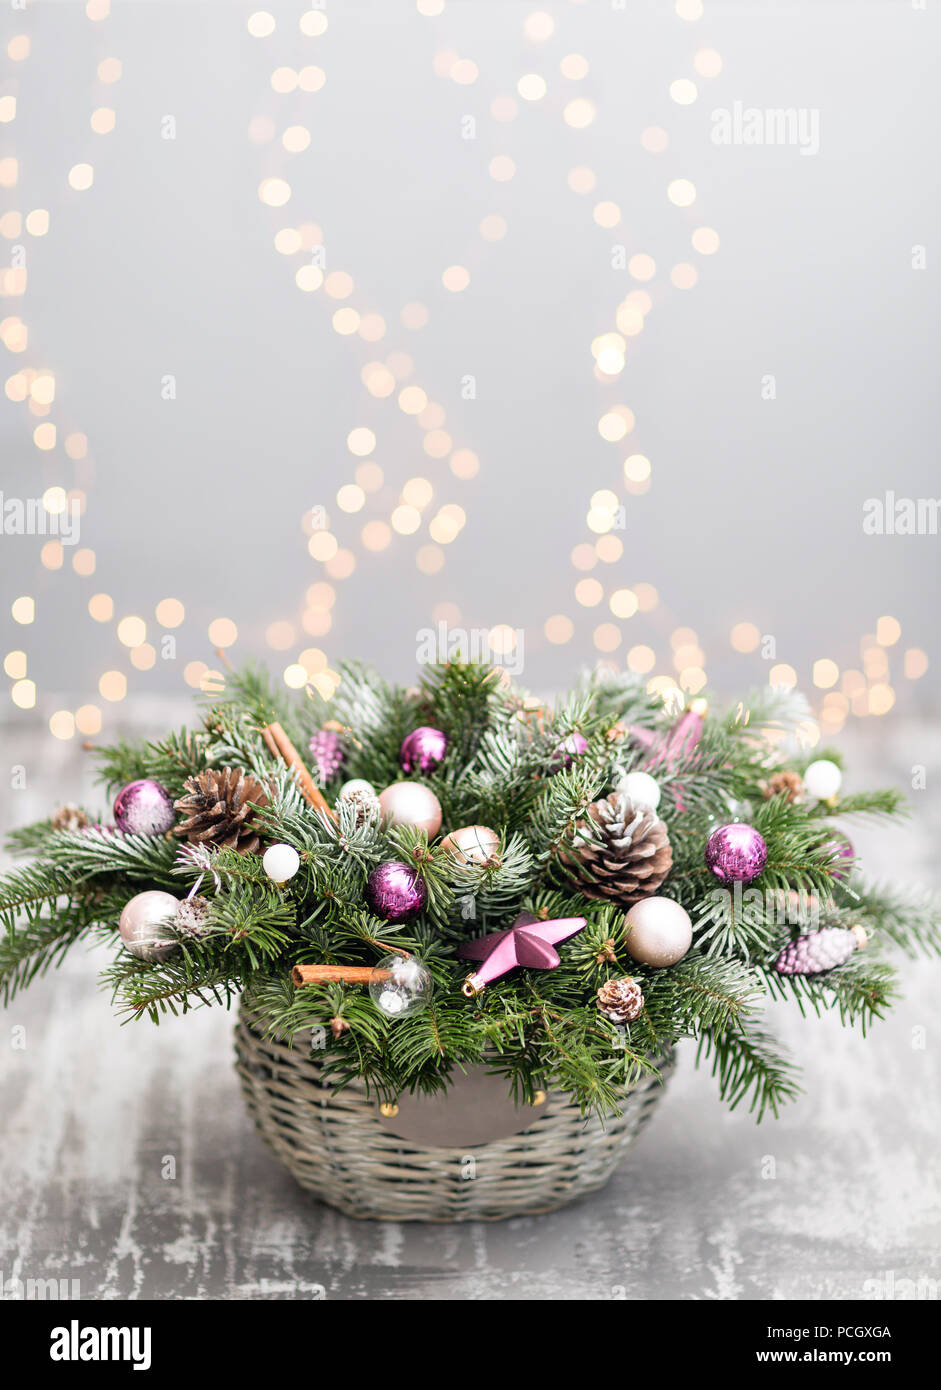 christmas or new year greeting card with a wicker basket with pine cones fir branches decorative balls on old wooden background